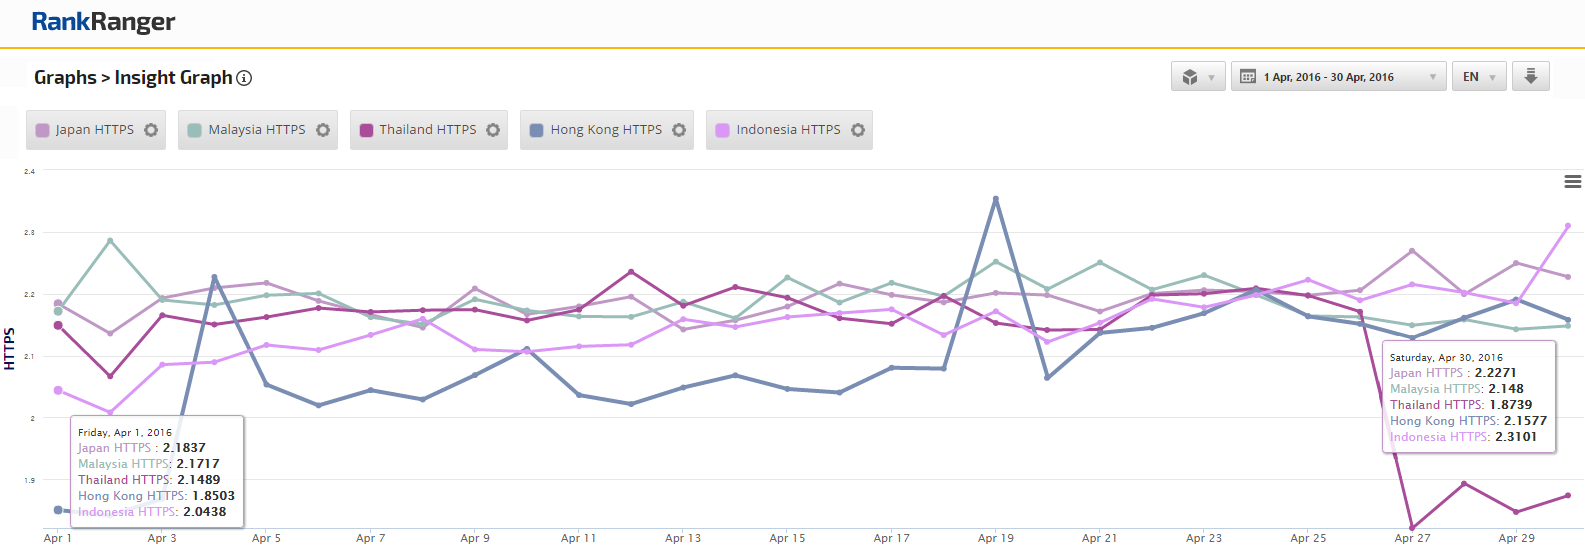 April HTTPS Trends in Asia